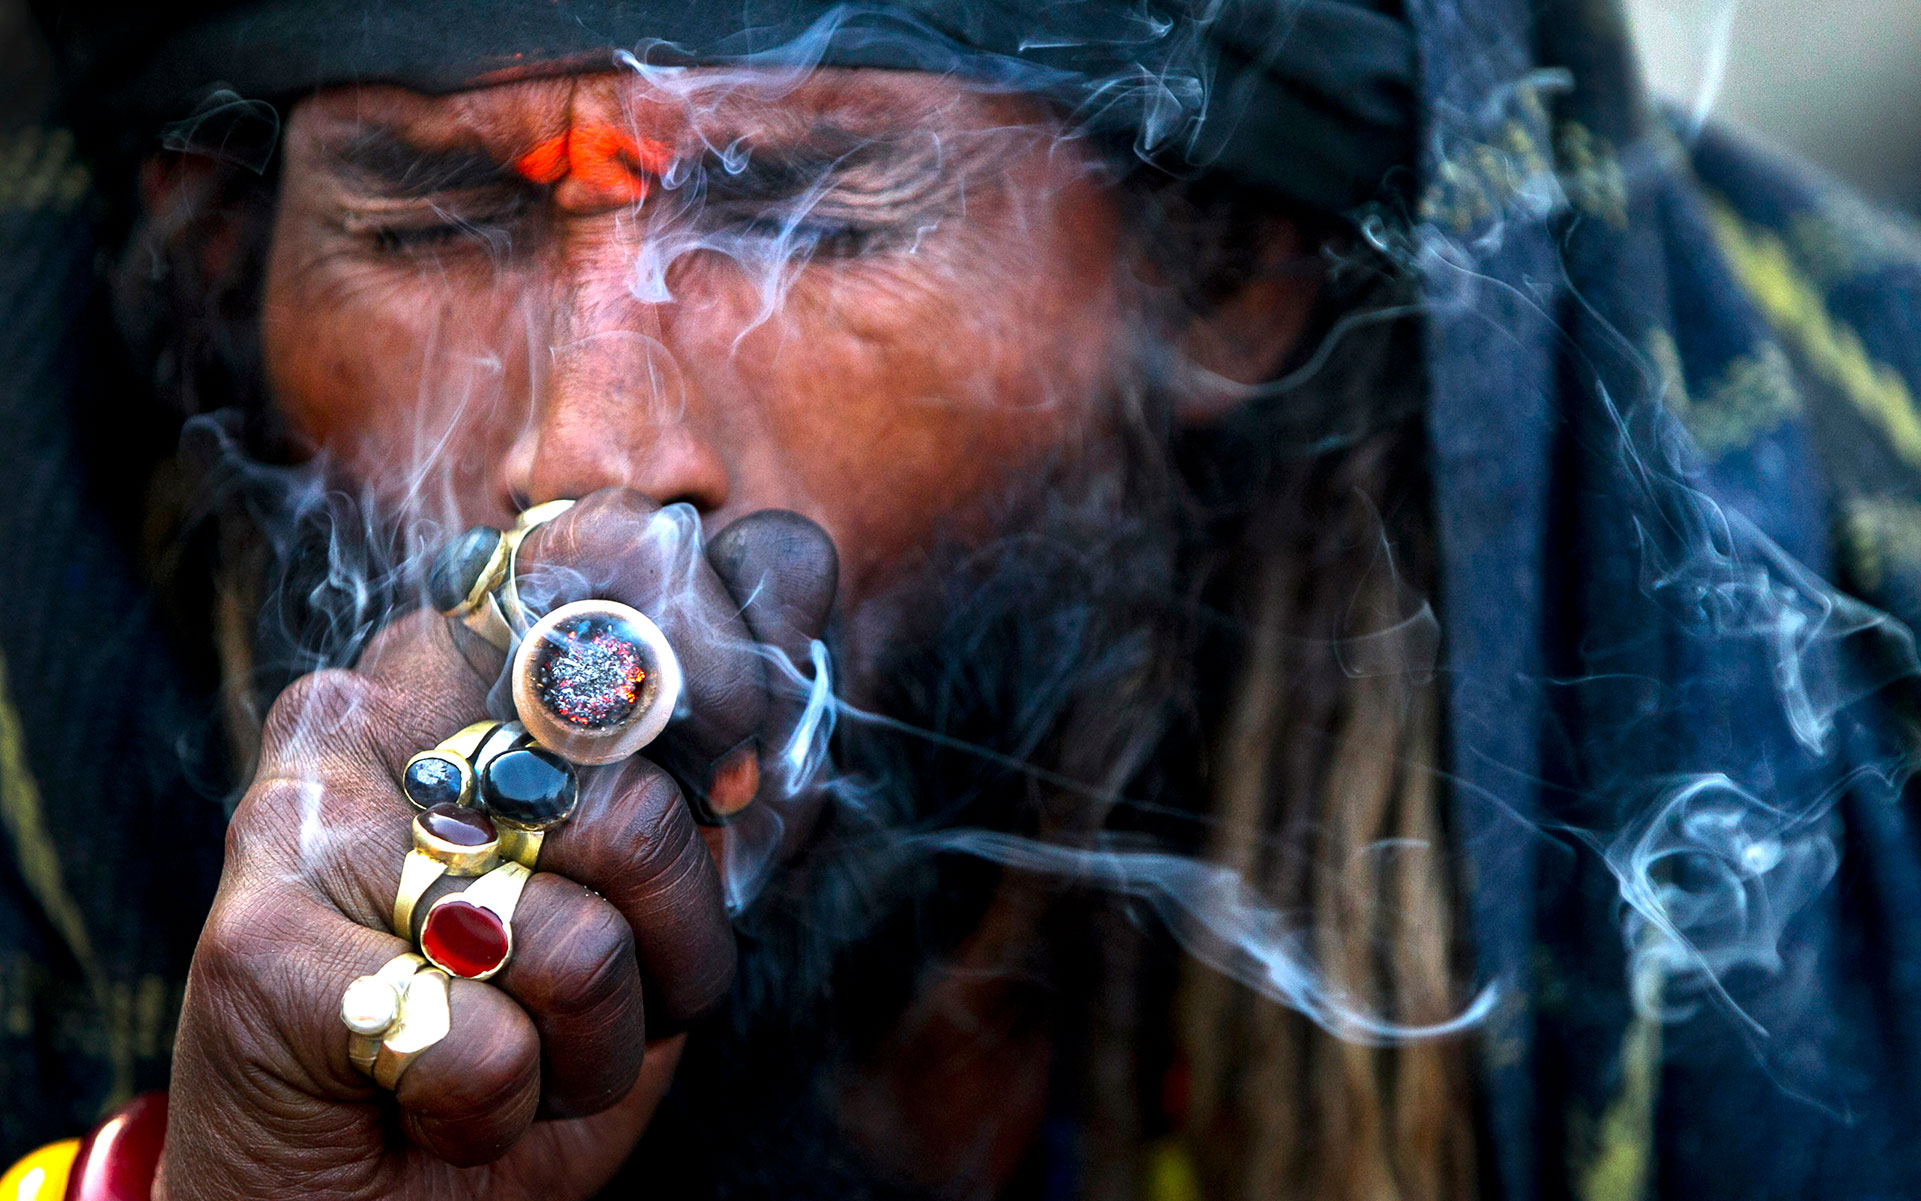 Legal cannabis in Nepal? It could happen